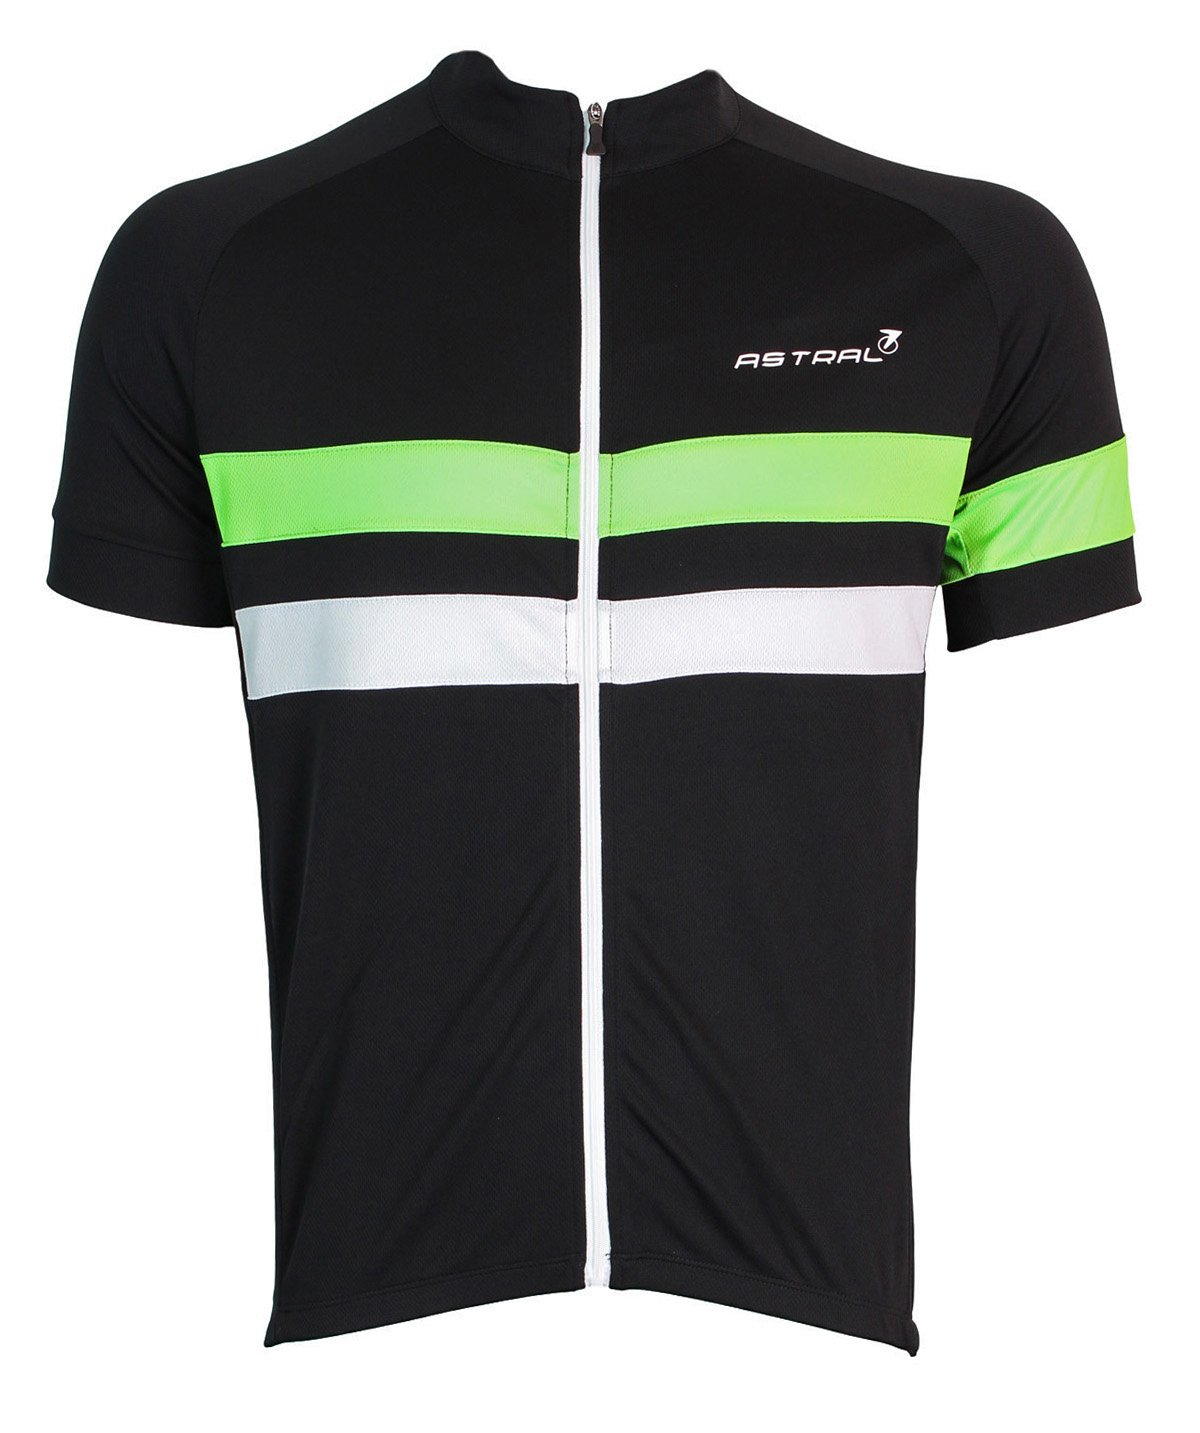 Astral Tirreno jersey sort/grøn